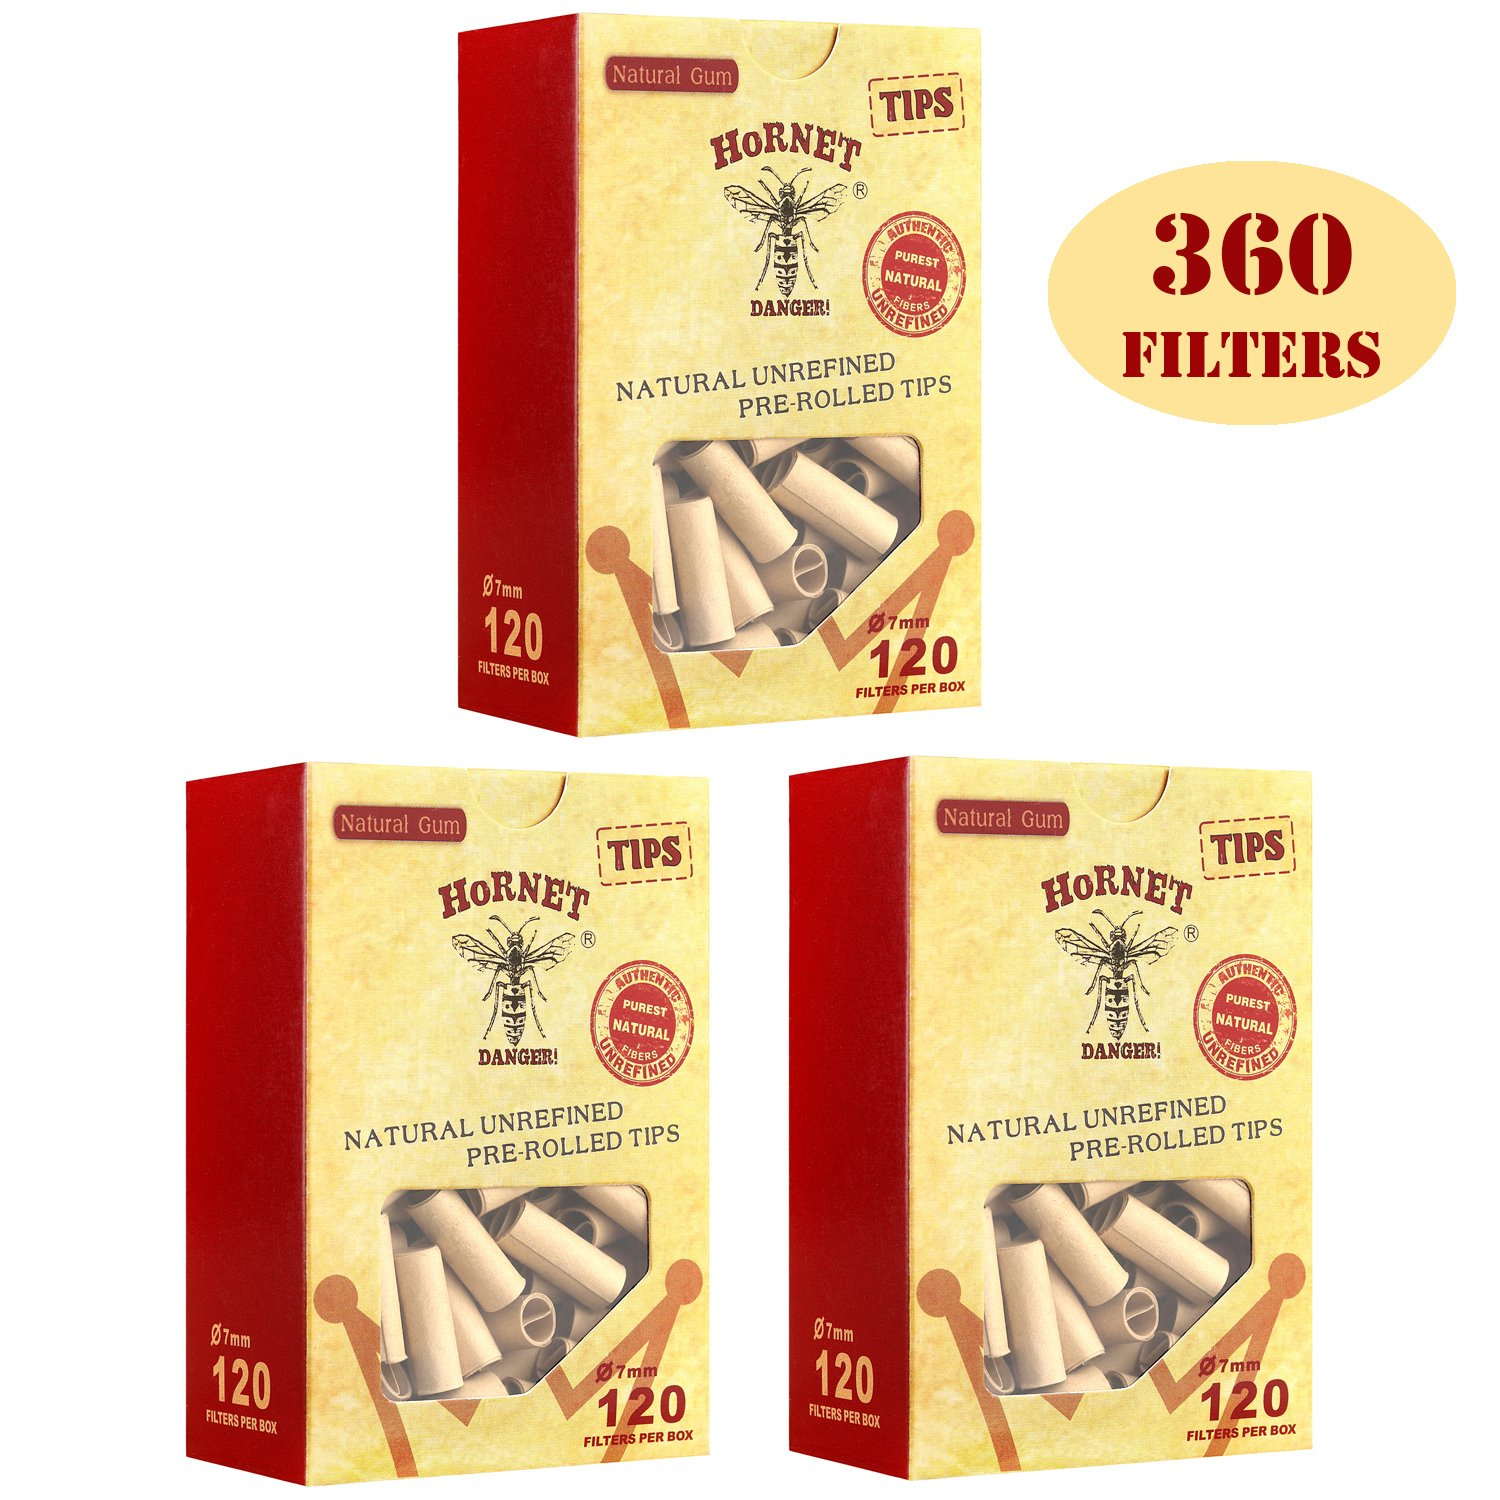 HORNET 360 Pre-Rolled Filters Natural unrefined Pre-rolled Paper Tips-3 packs of 120 tips(Ø7mm)